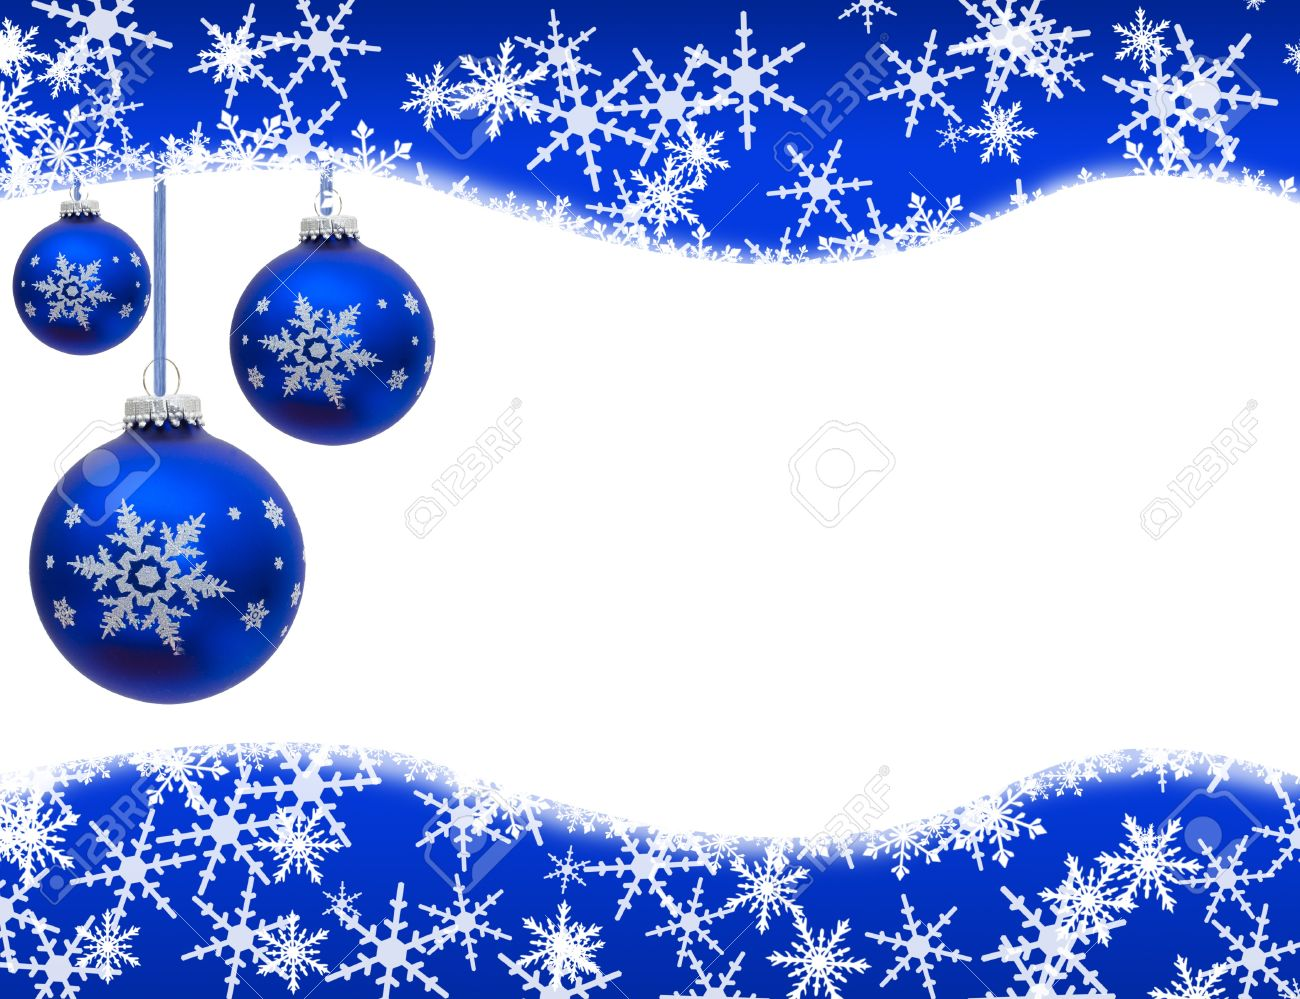 Christmas Ornaments And Snowflake Border Isolated On White, Christmas Time  Stock Photo  11272747